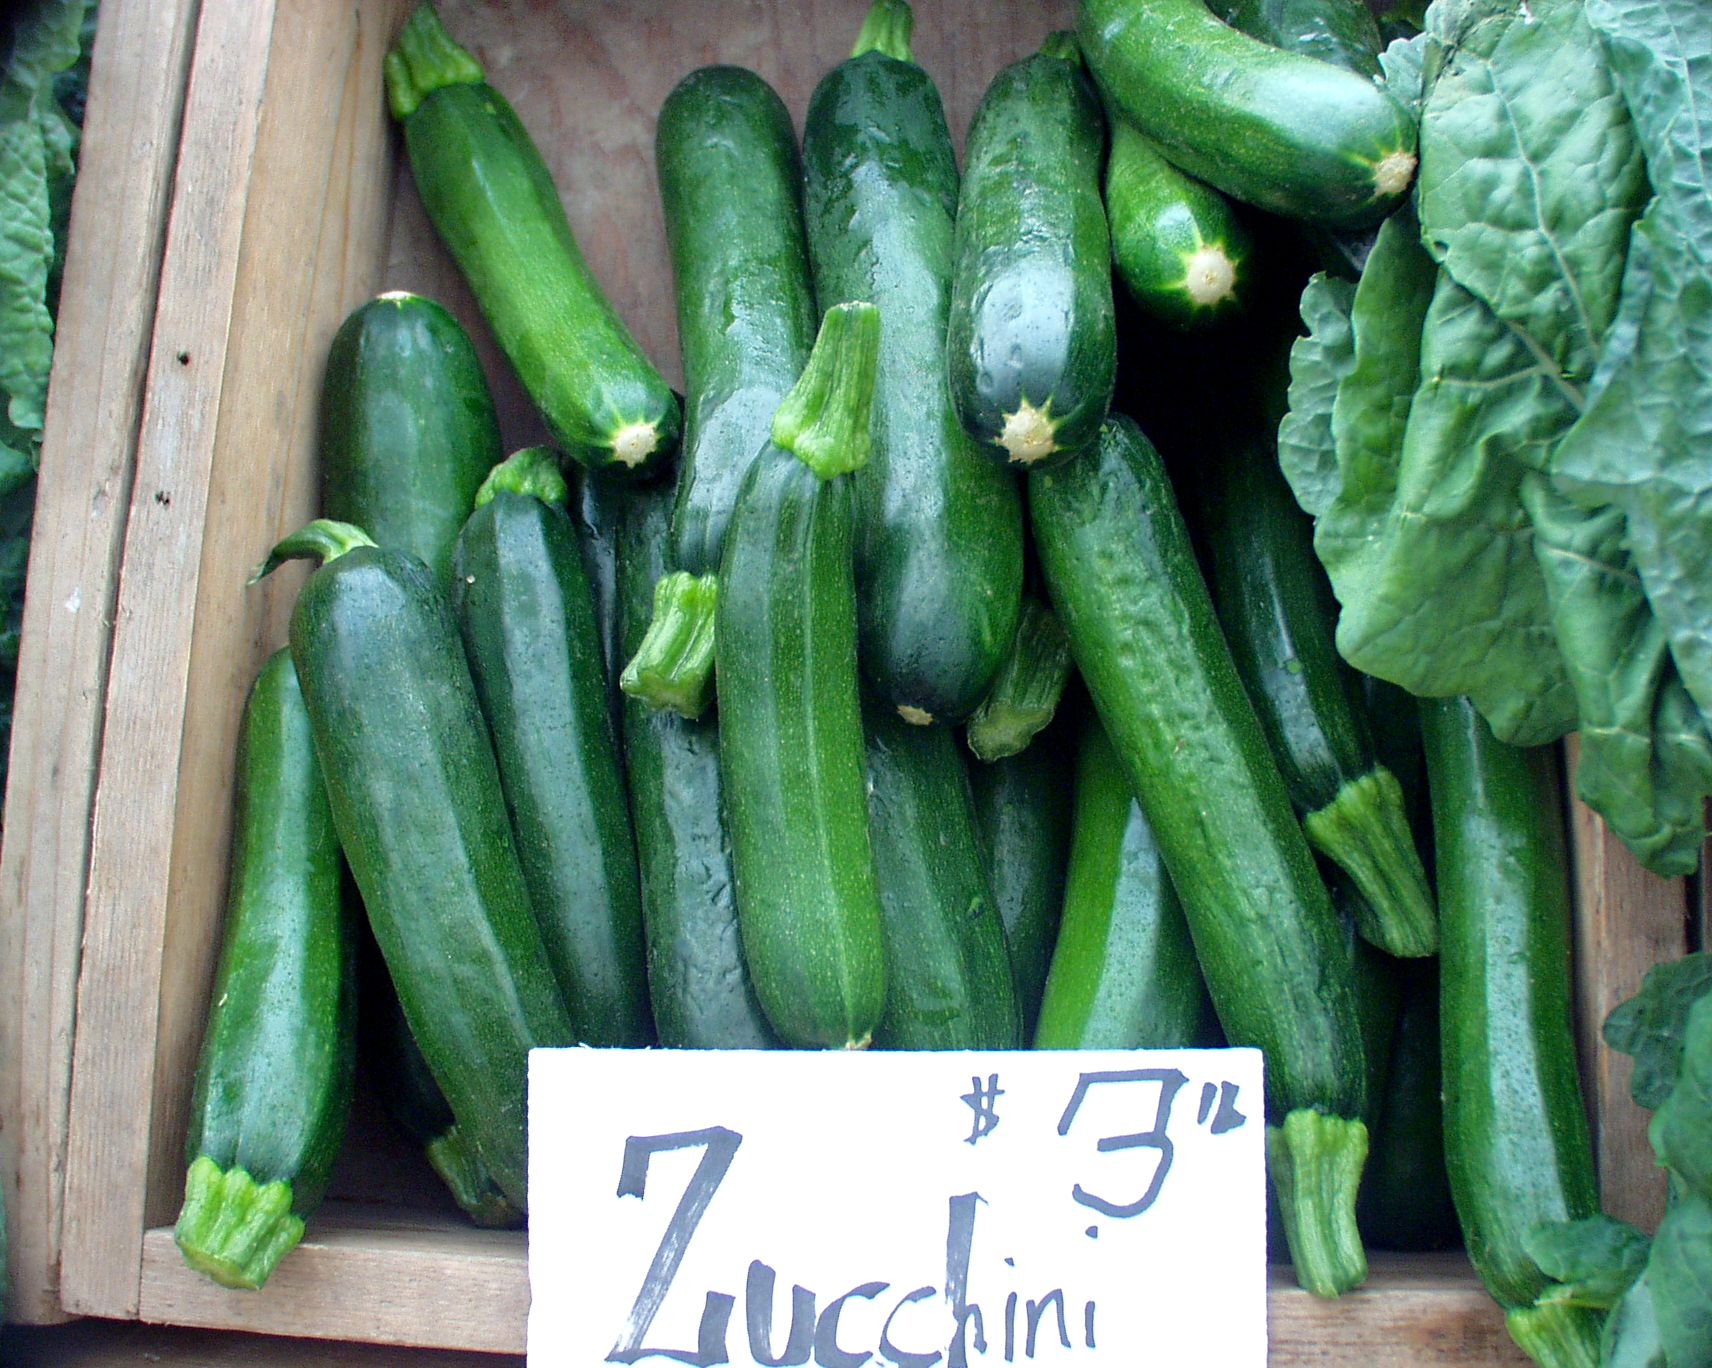 Full Circle zucchini. Photo copyright 2009 by Zachary D. Lyons.